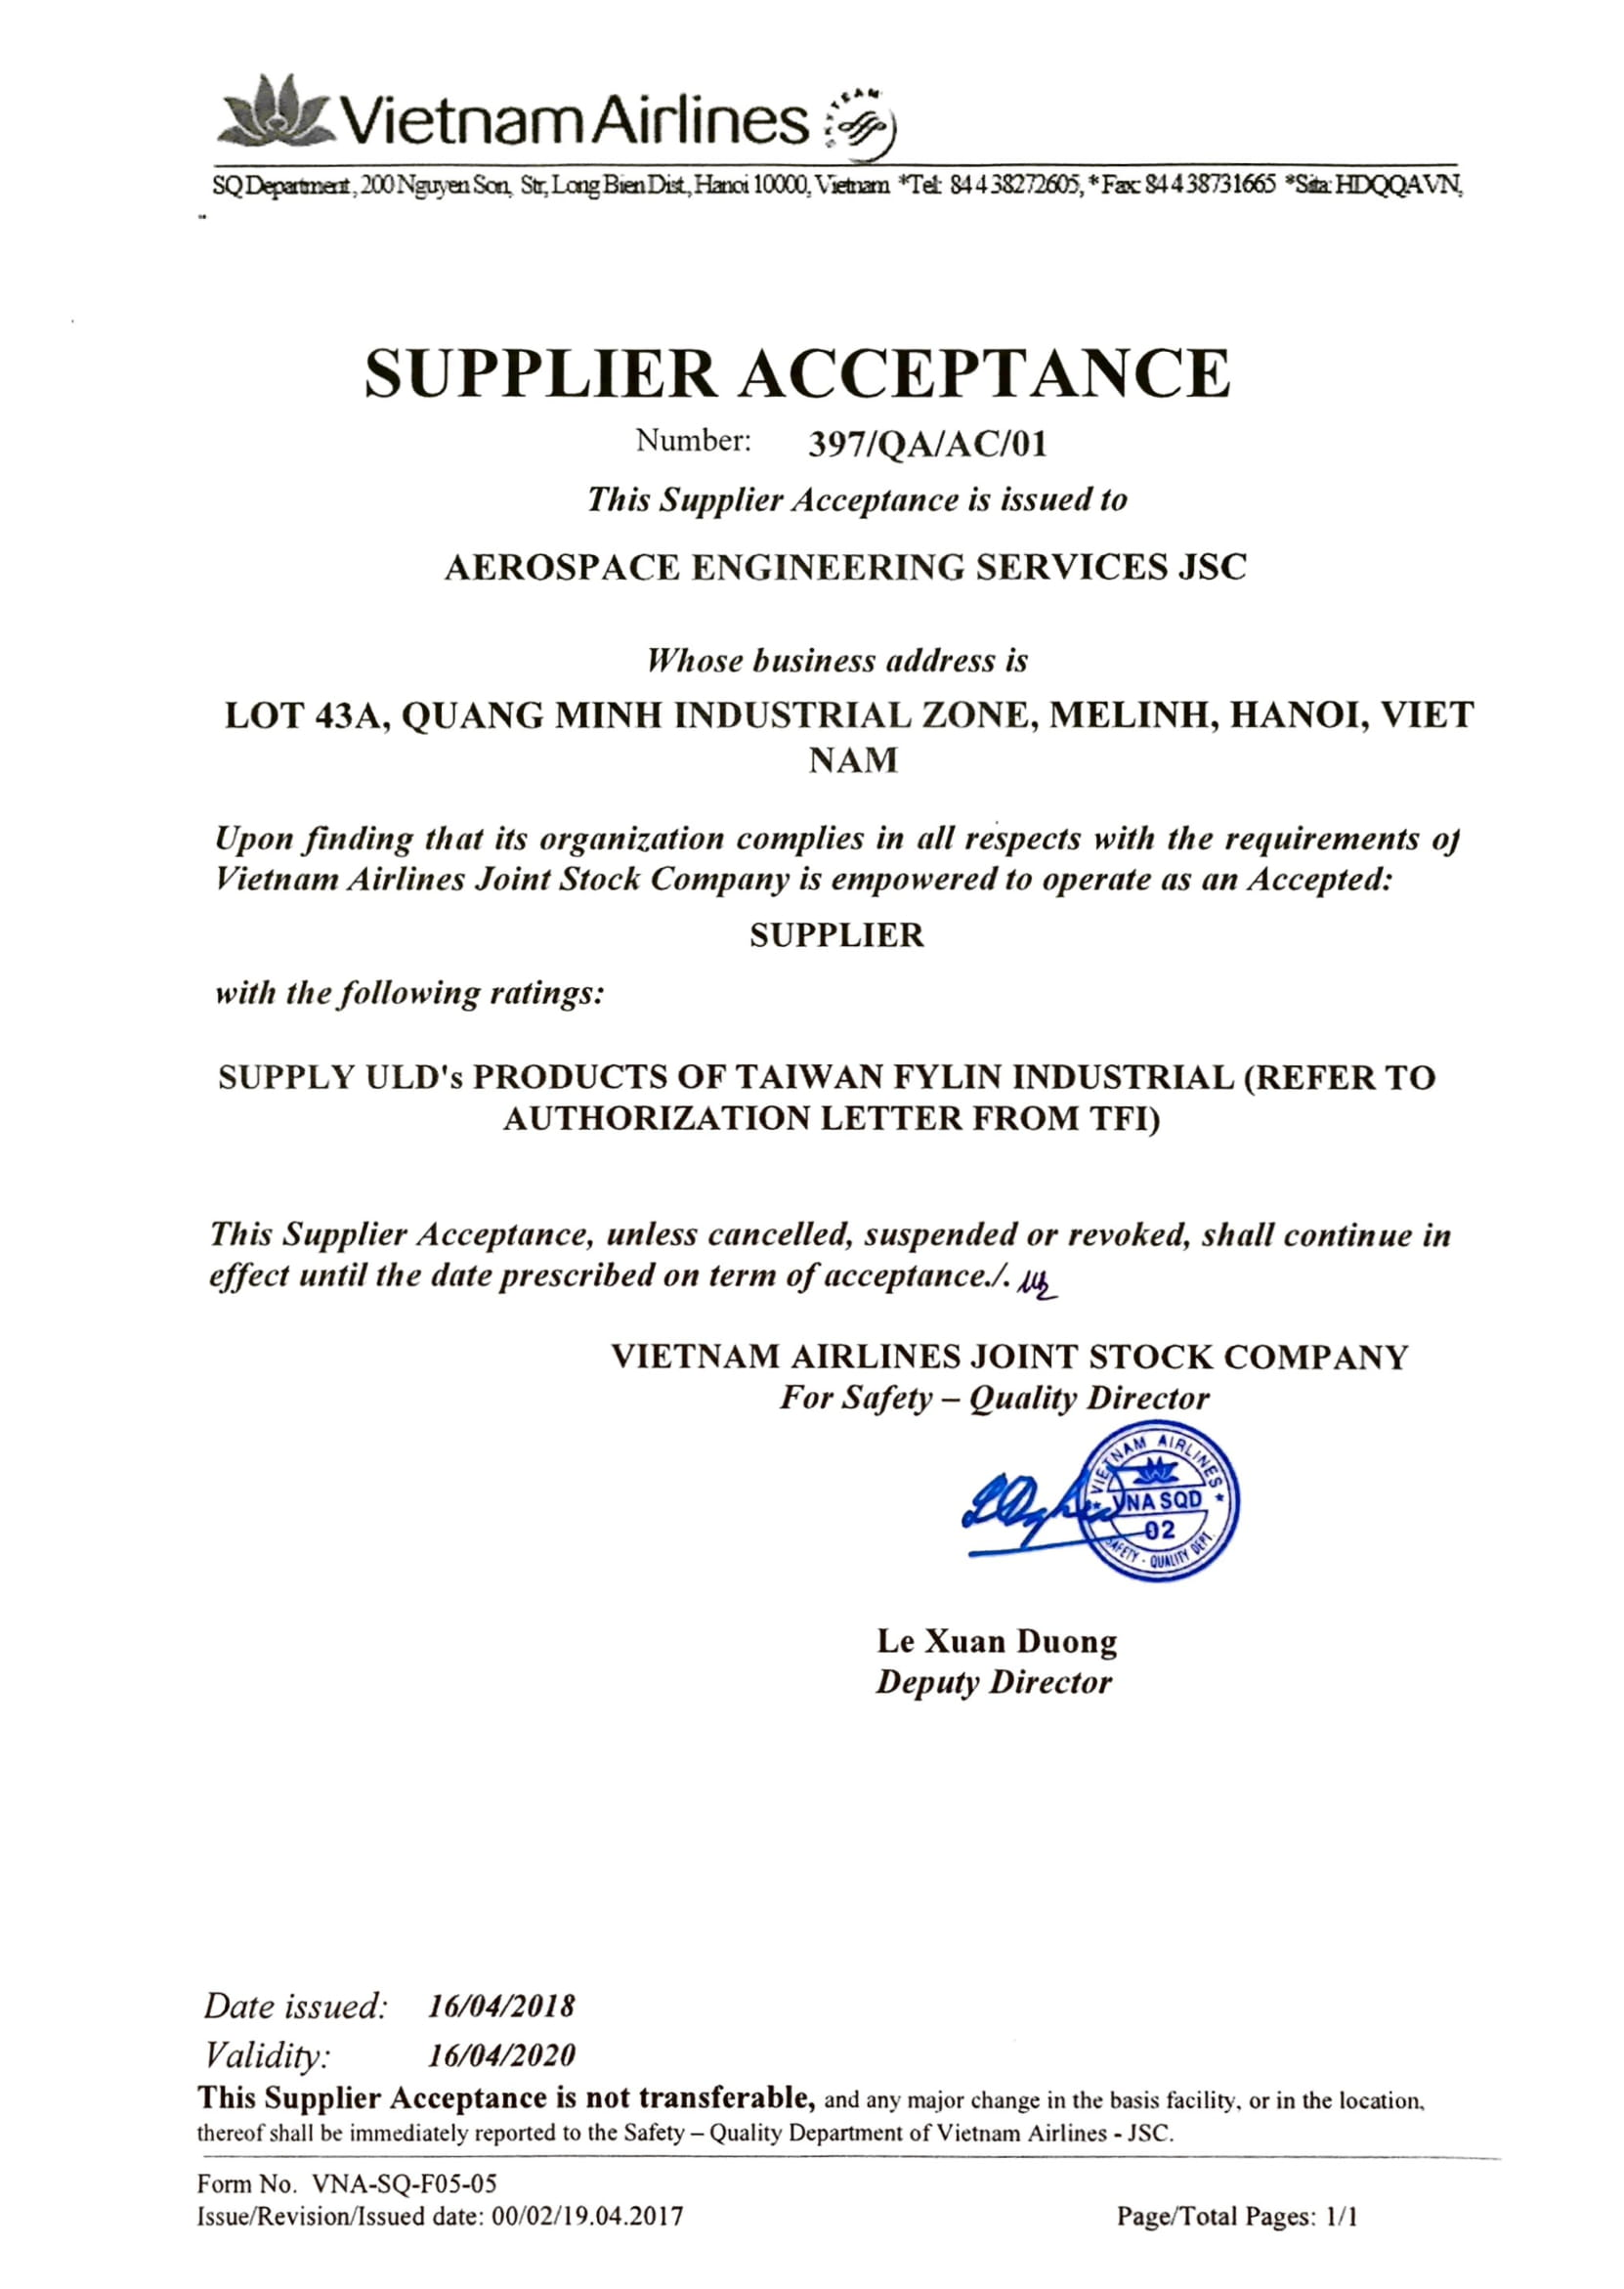 Vietnam Airlines Supplier Acceptance